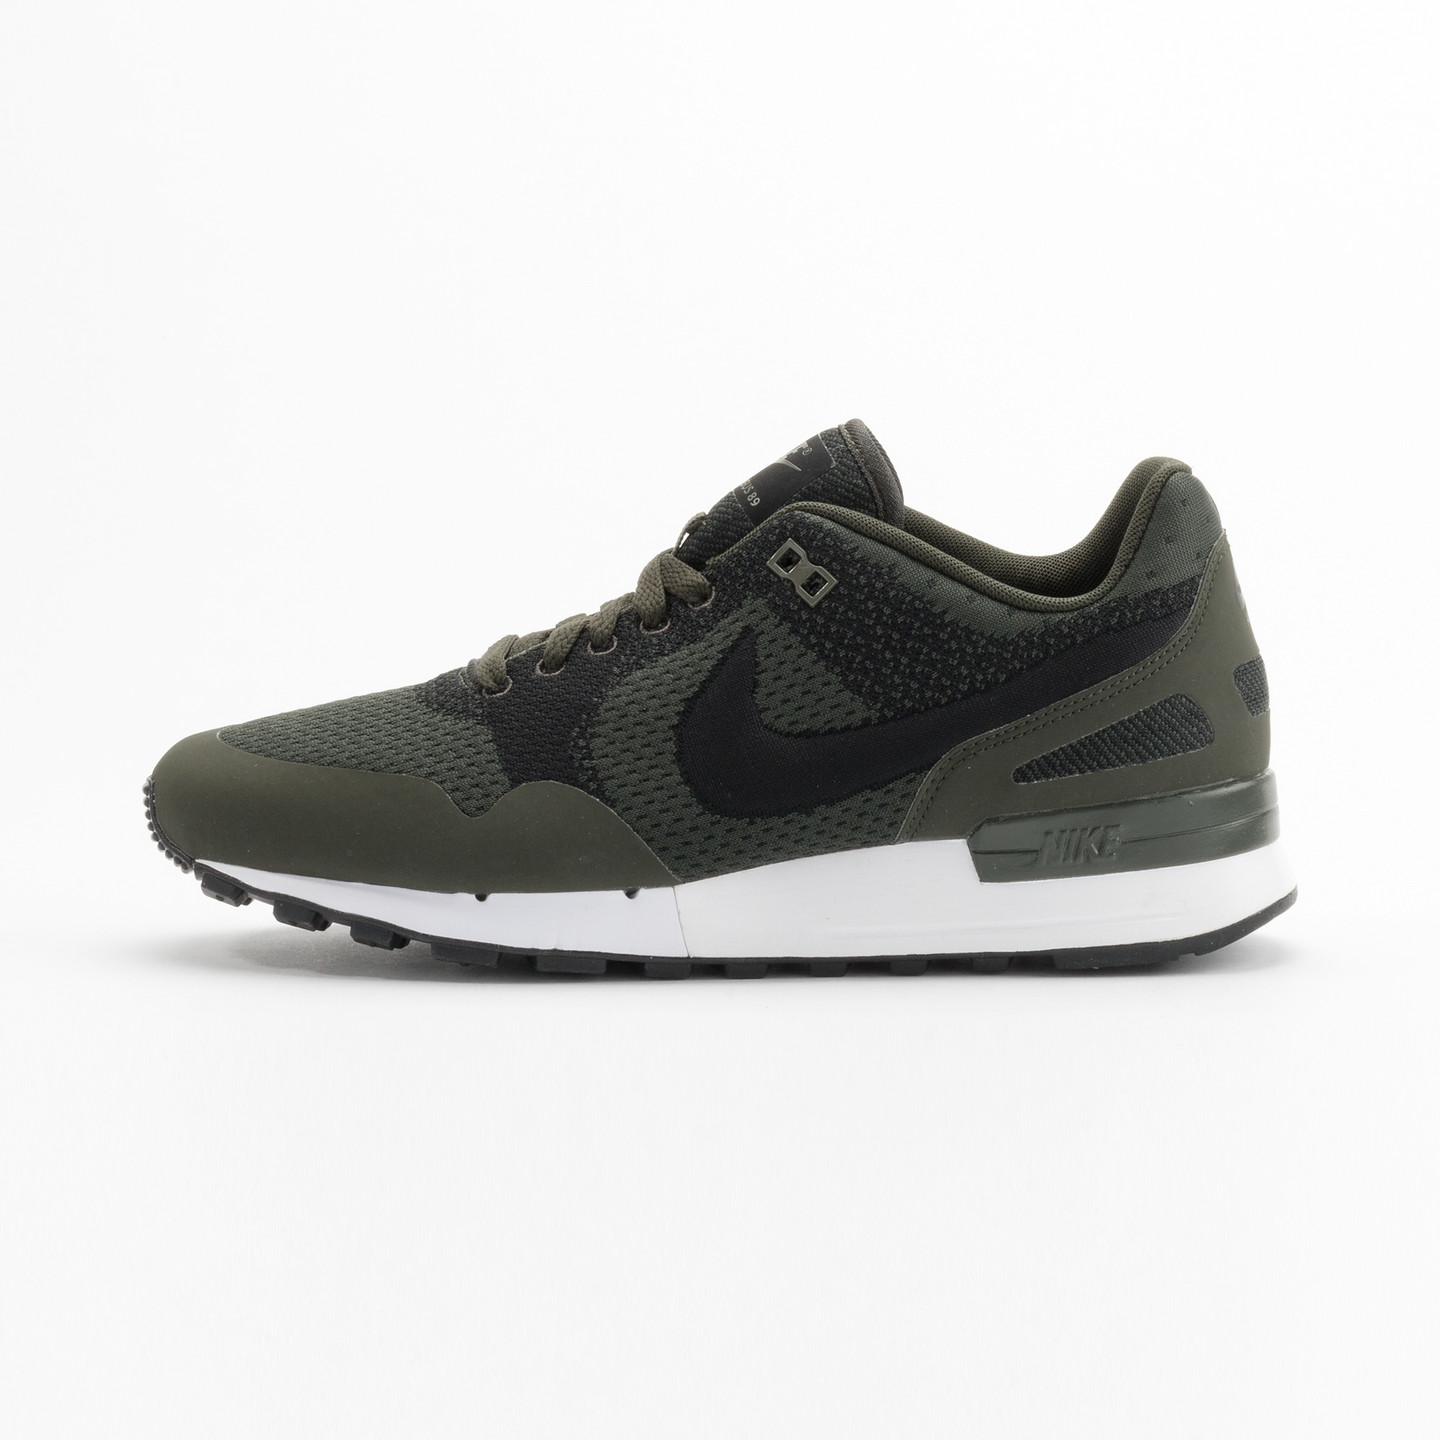 Nike Air Pegasus ´89 Jacquard Sequoia / Black / White 844751-300-43